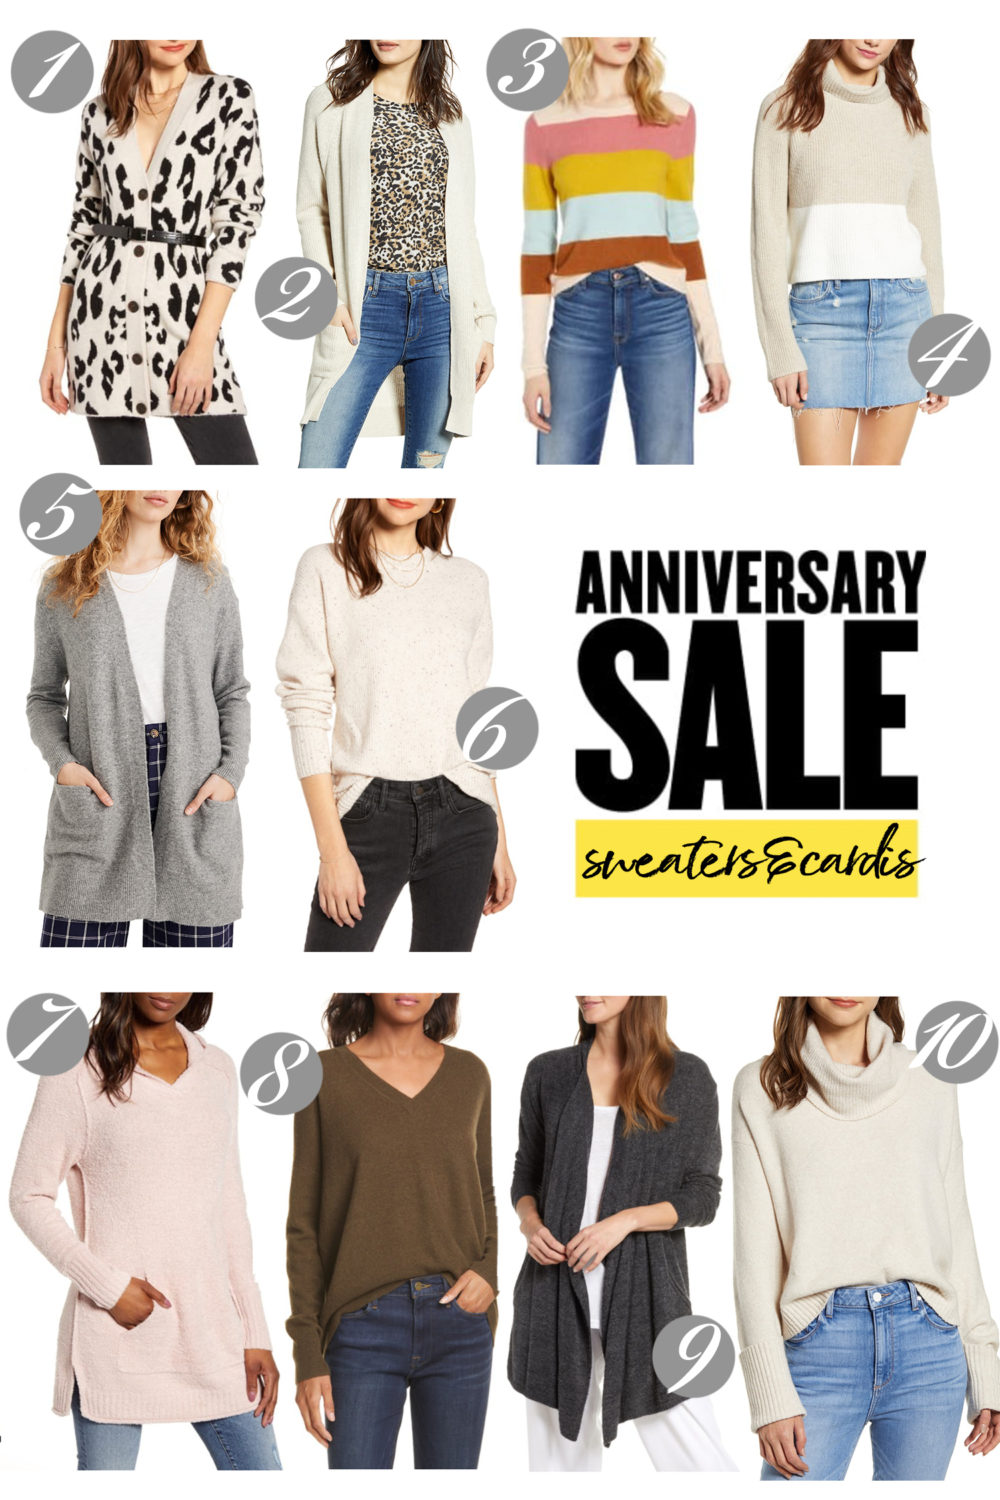 Nordstrom Anniversary Sale | Nordstrom Anniversary Sale Sweaters and Cardigans |